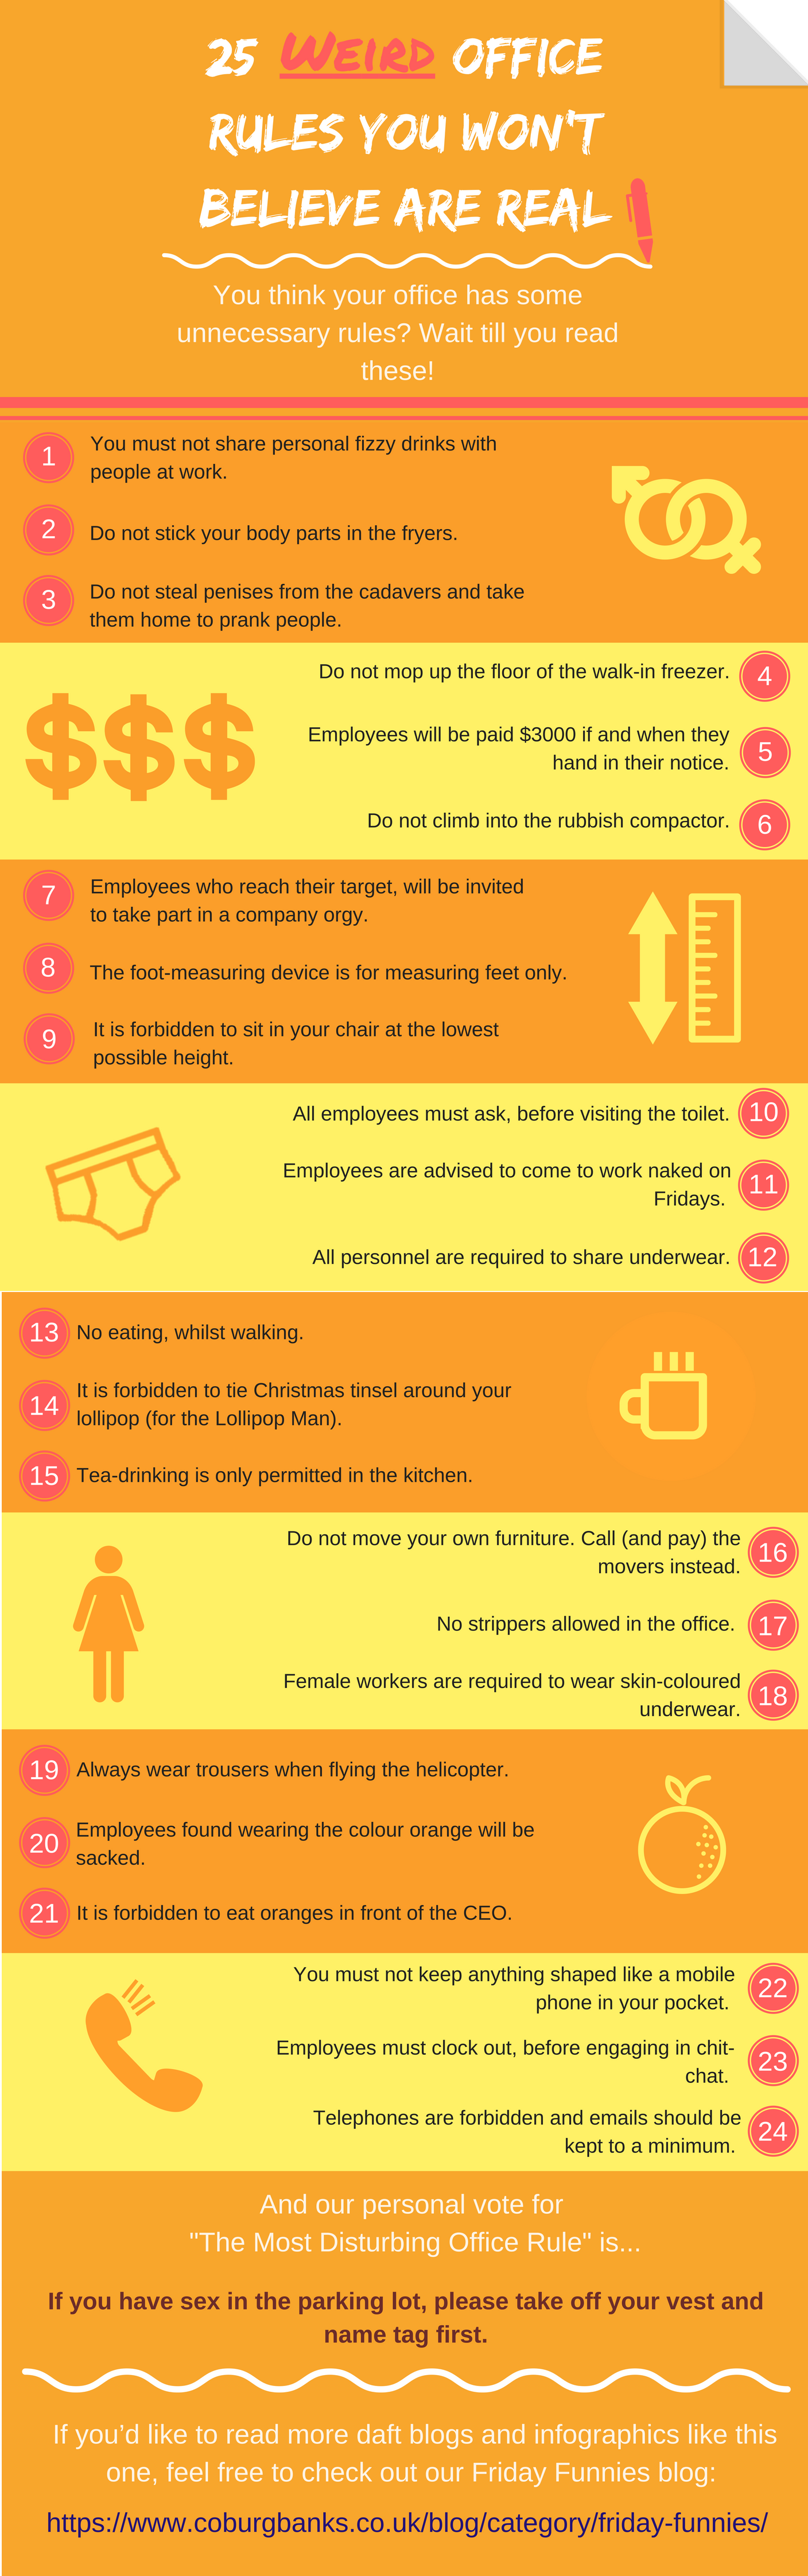 Weird Office Rules Infographic